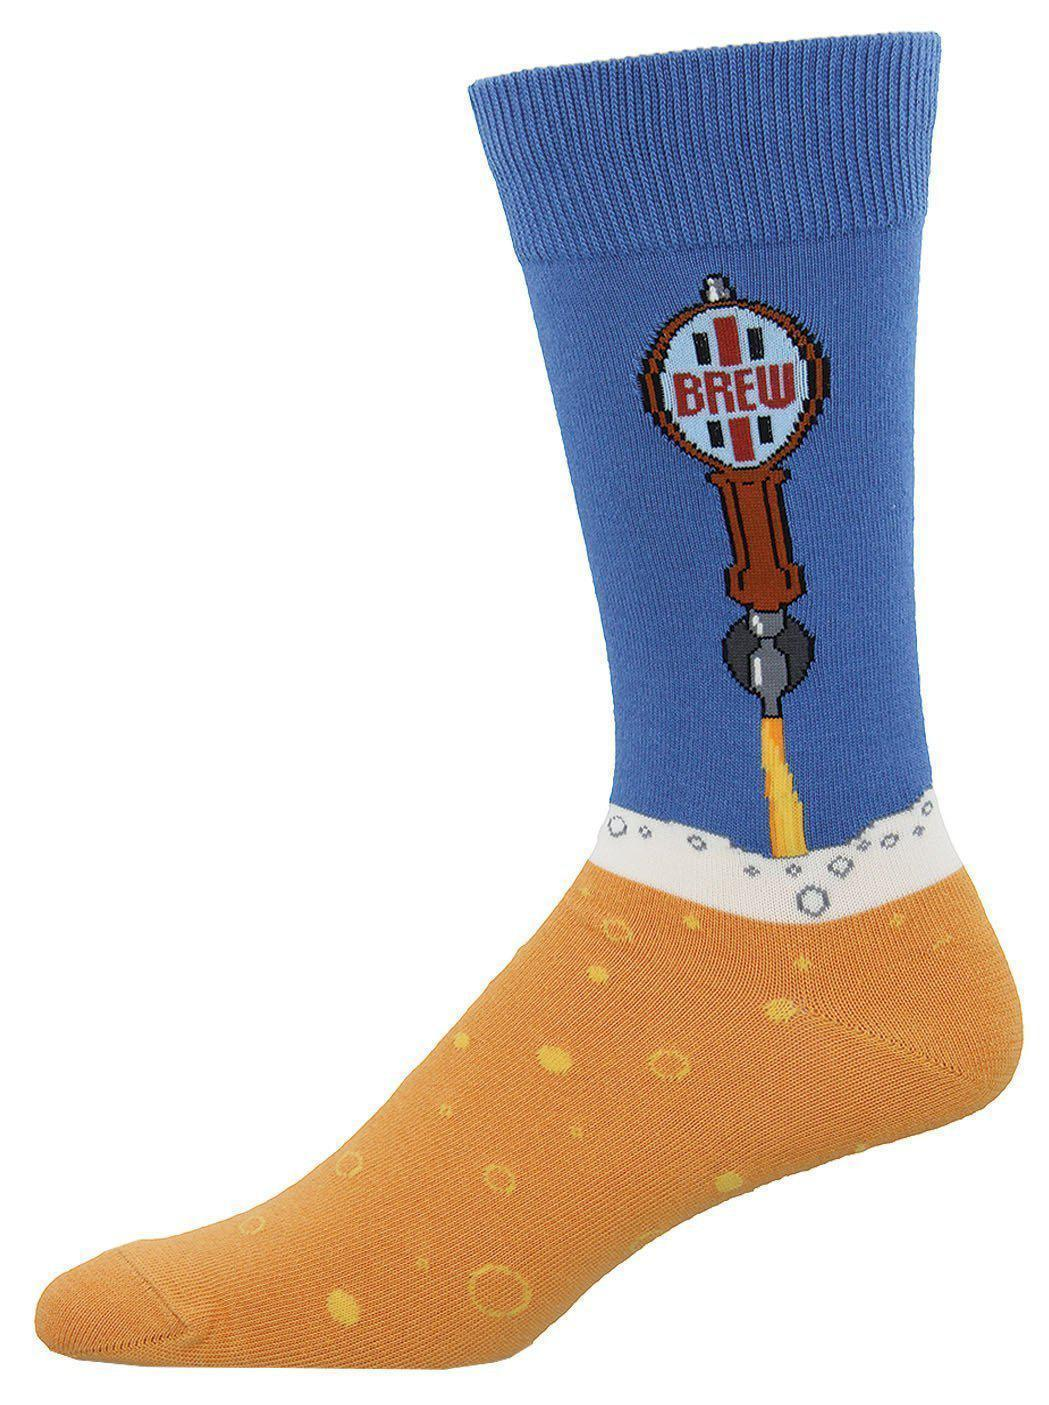 Socksmith - Beer Taps Crew Socks | Men's - Knock Your Socks Off